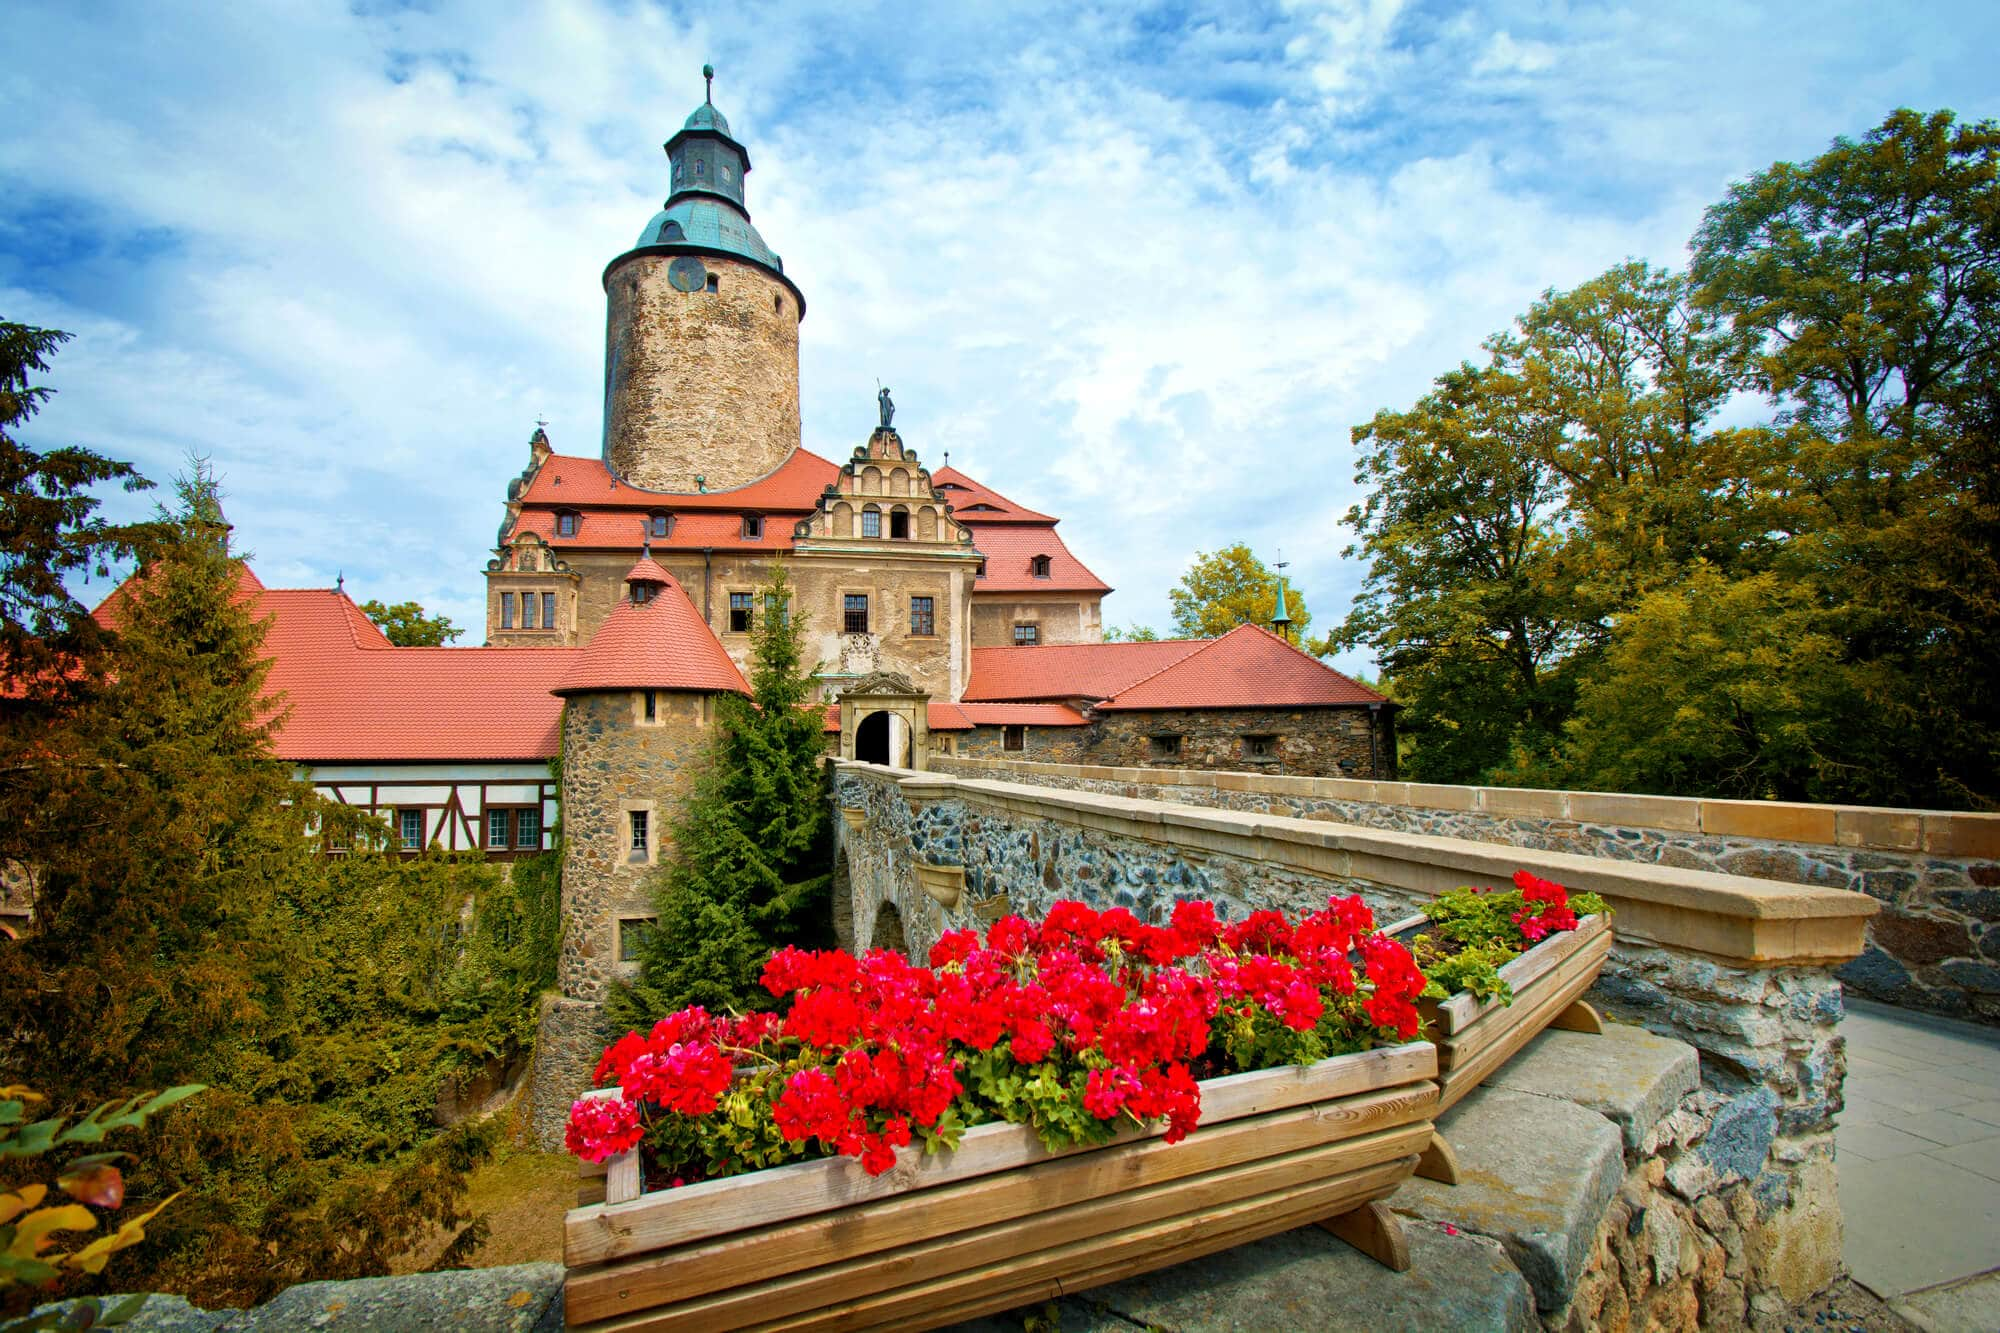 12 of the most beautiful castle in Poland you should add to your bucket list - Czocha Castle